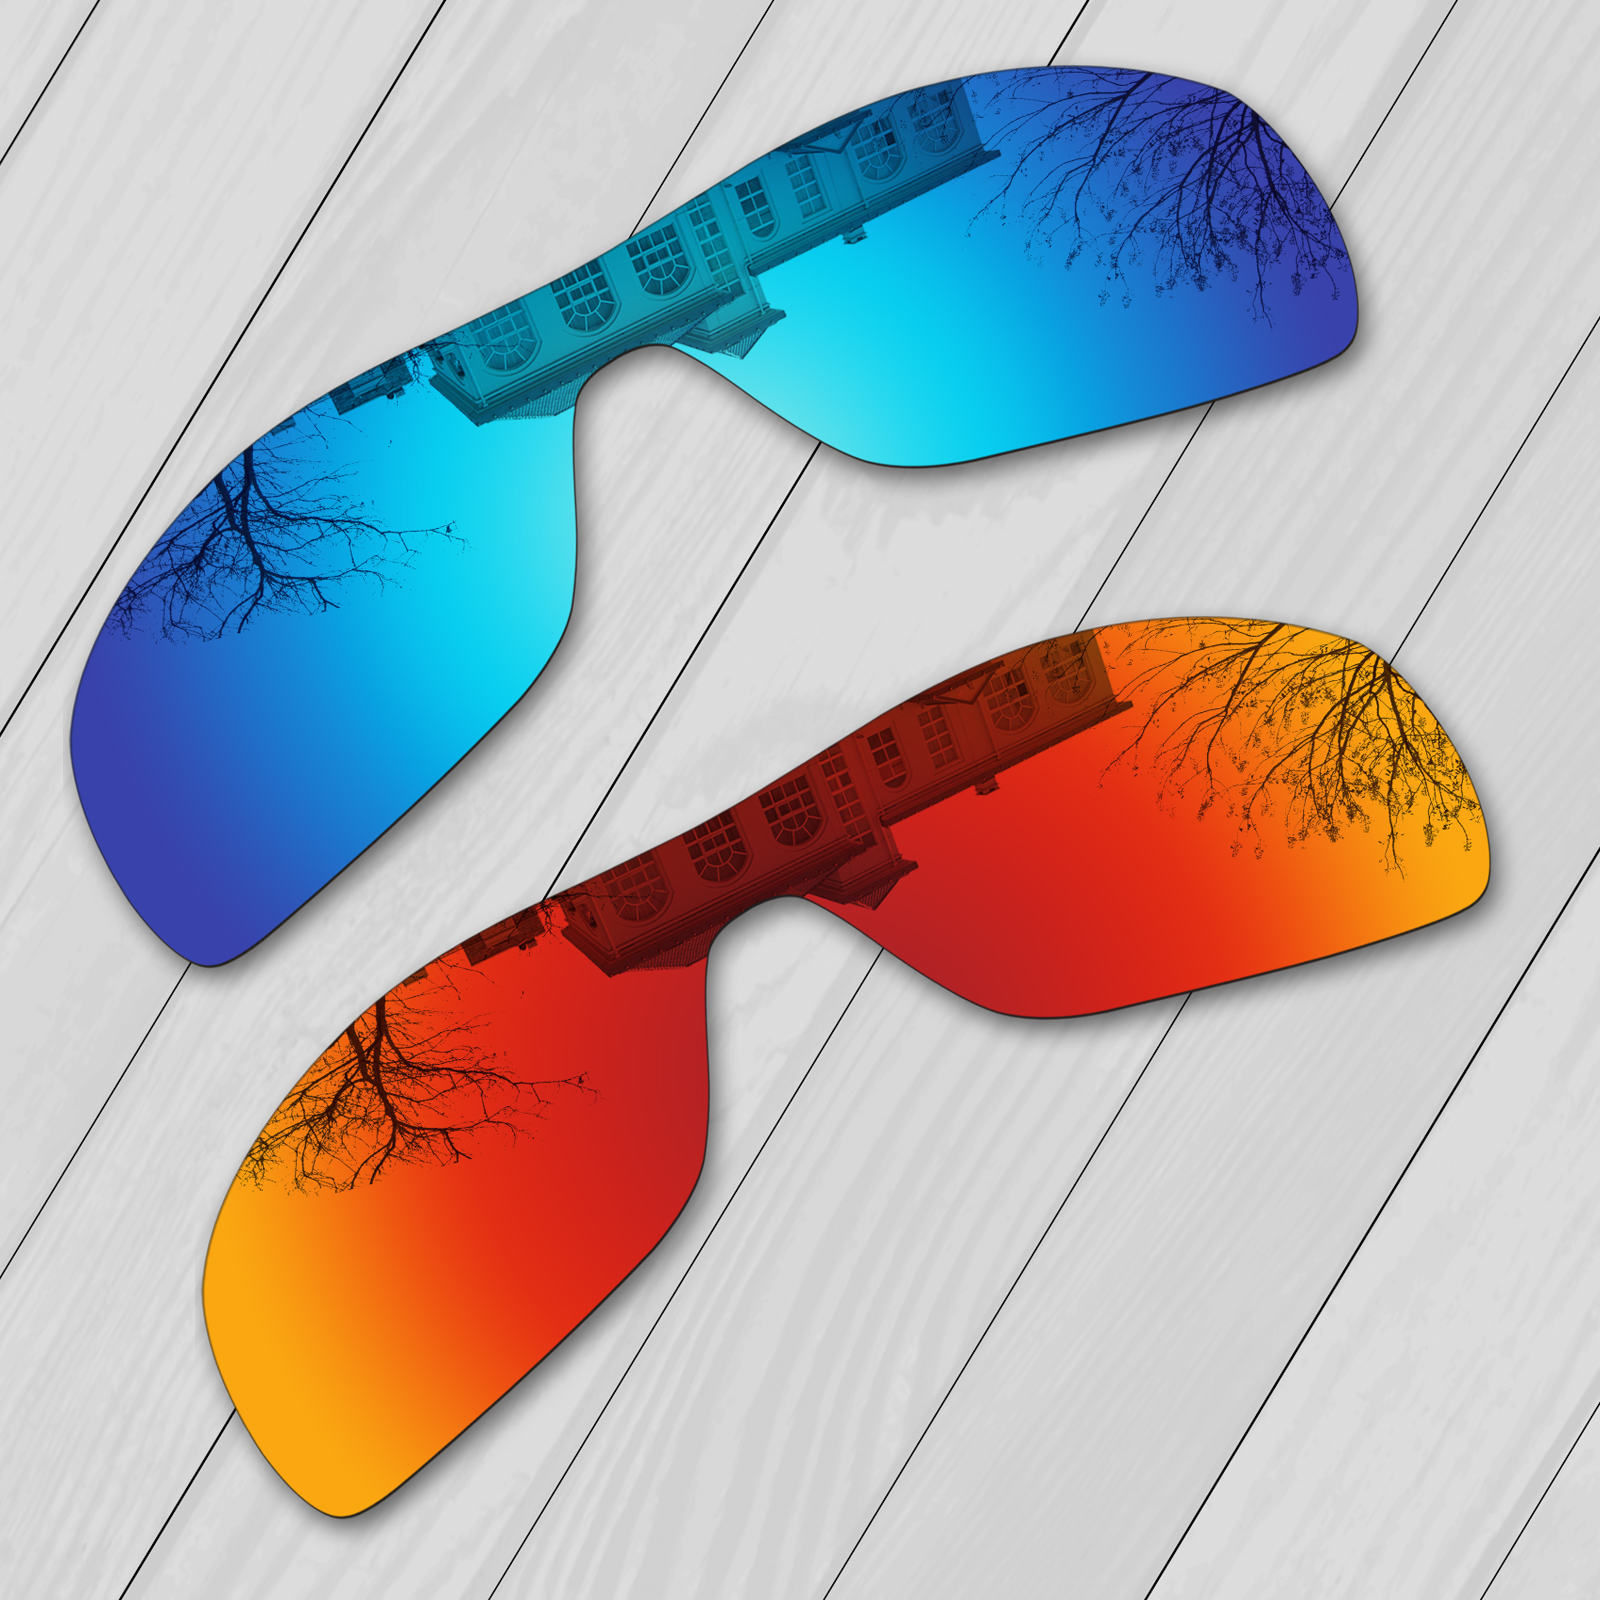 E.O.S 2 Pieces Ice Blue & Fire Red Mirror Polarized Replacement Lenses for Oakley Batwolf OO9101  Sunglasses